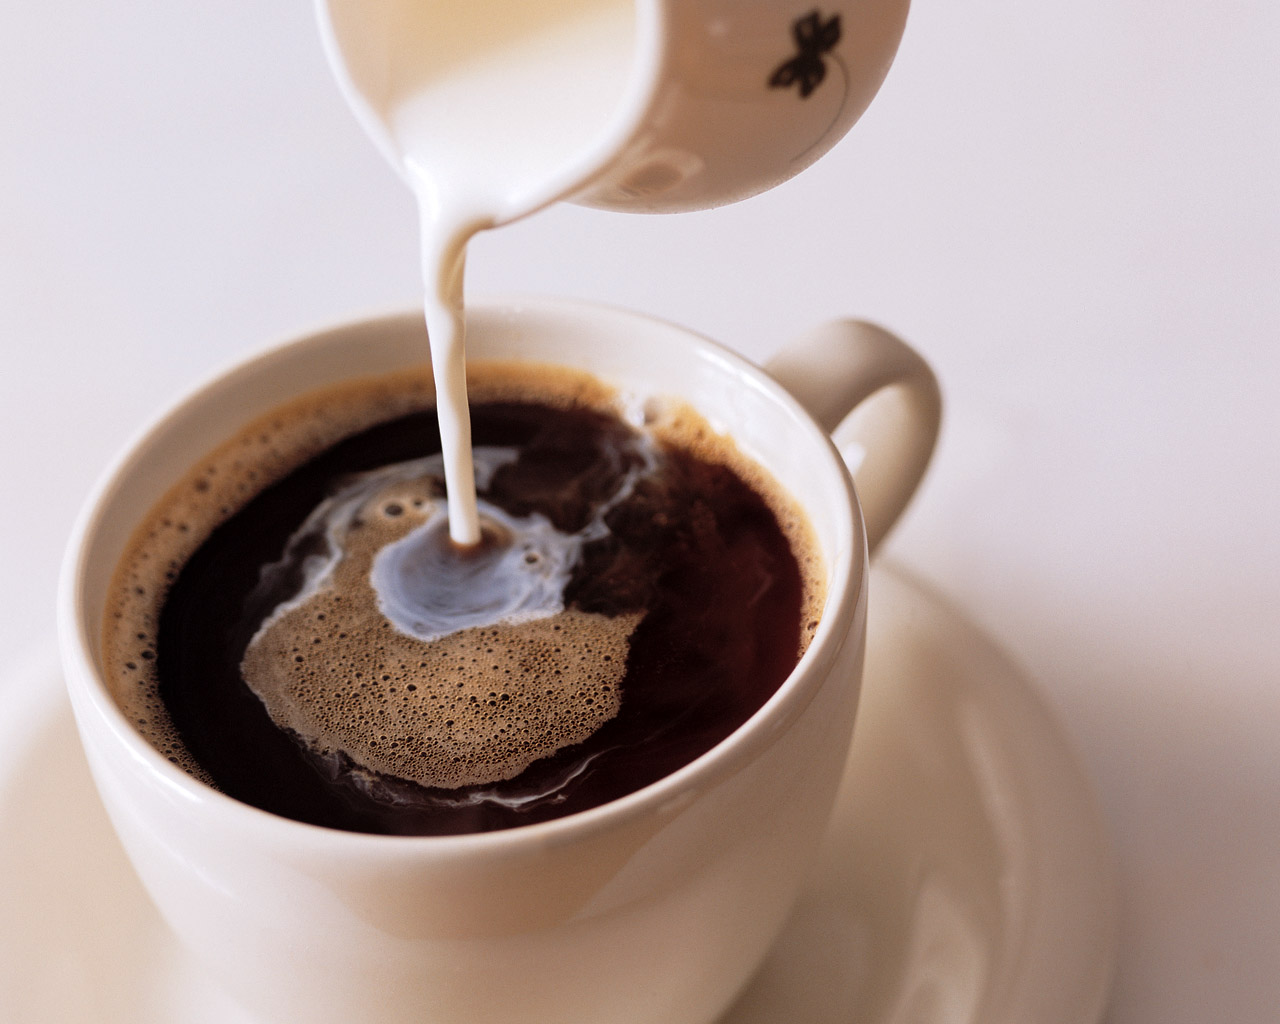 Americans drink 400 million cups of coffee every day which adds up to